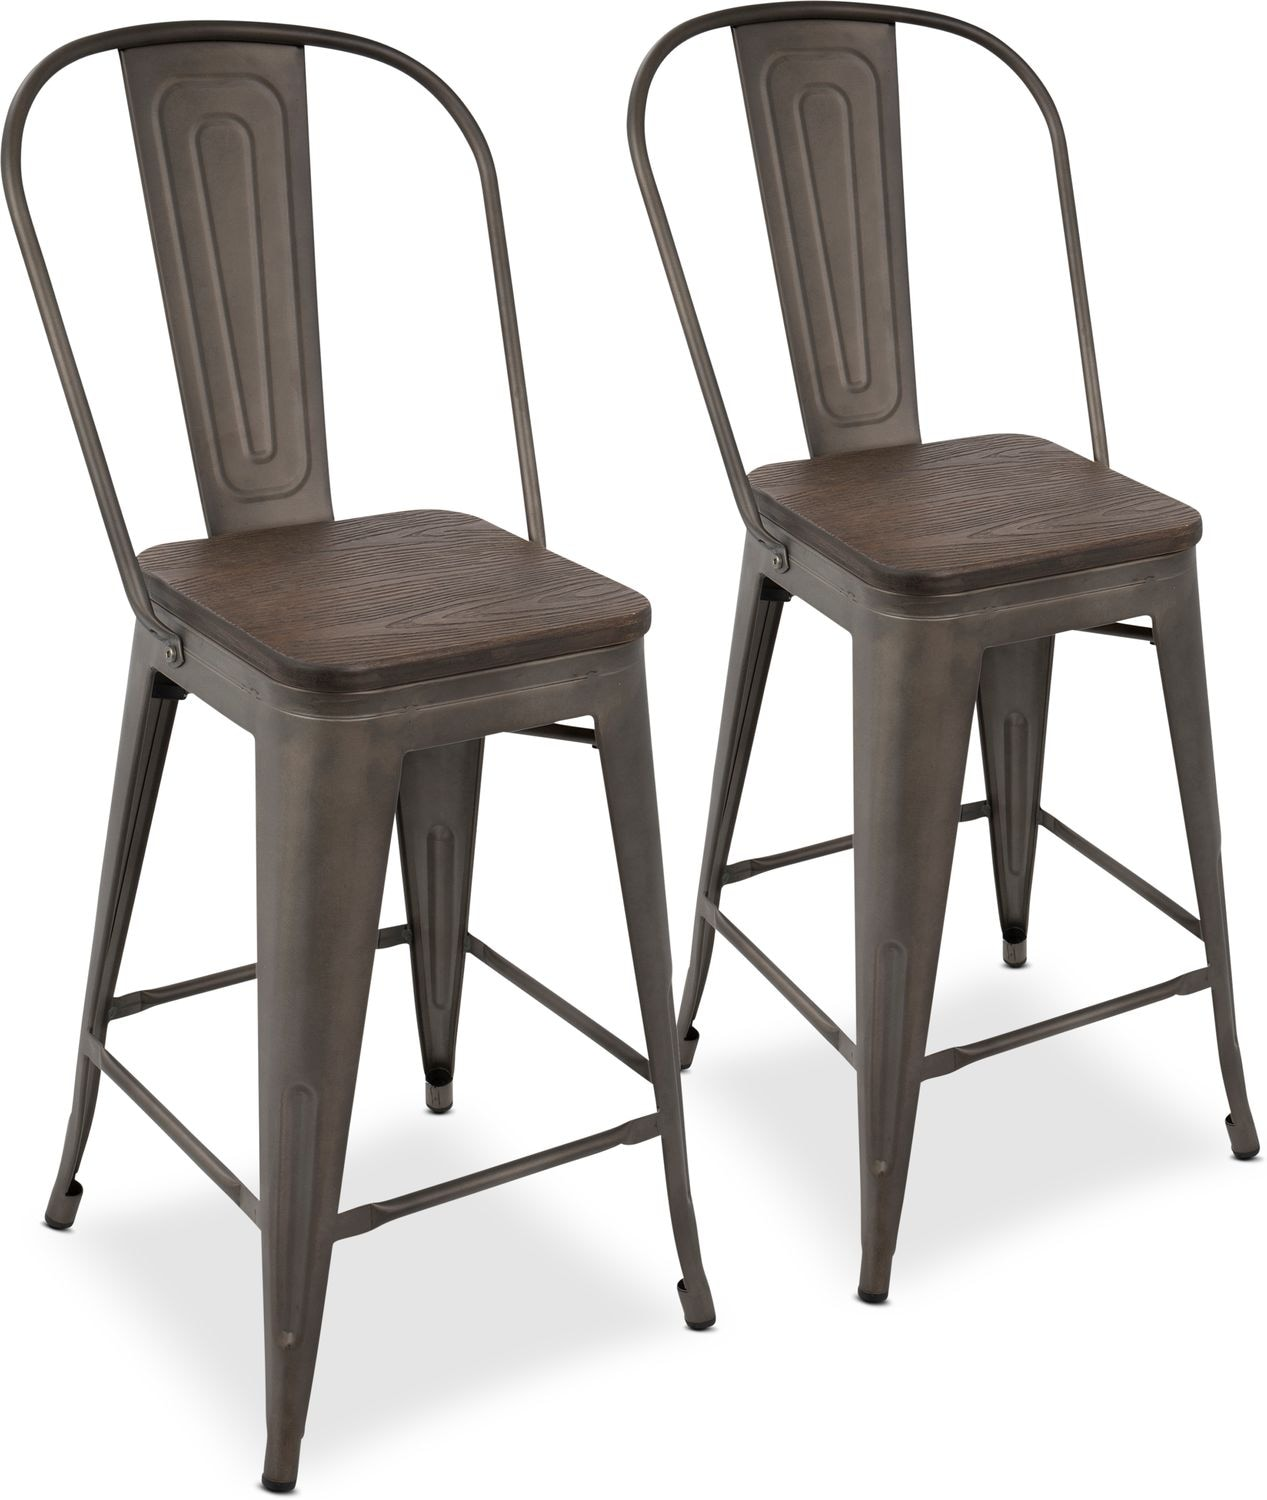 Dining Room Furniture - Dax Set of 2 High Back Counter-Height Stools